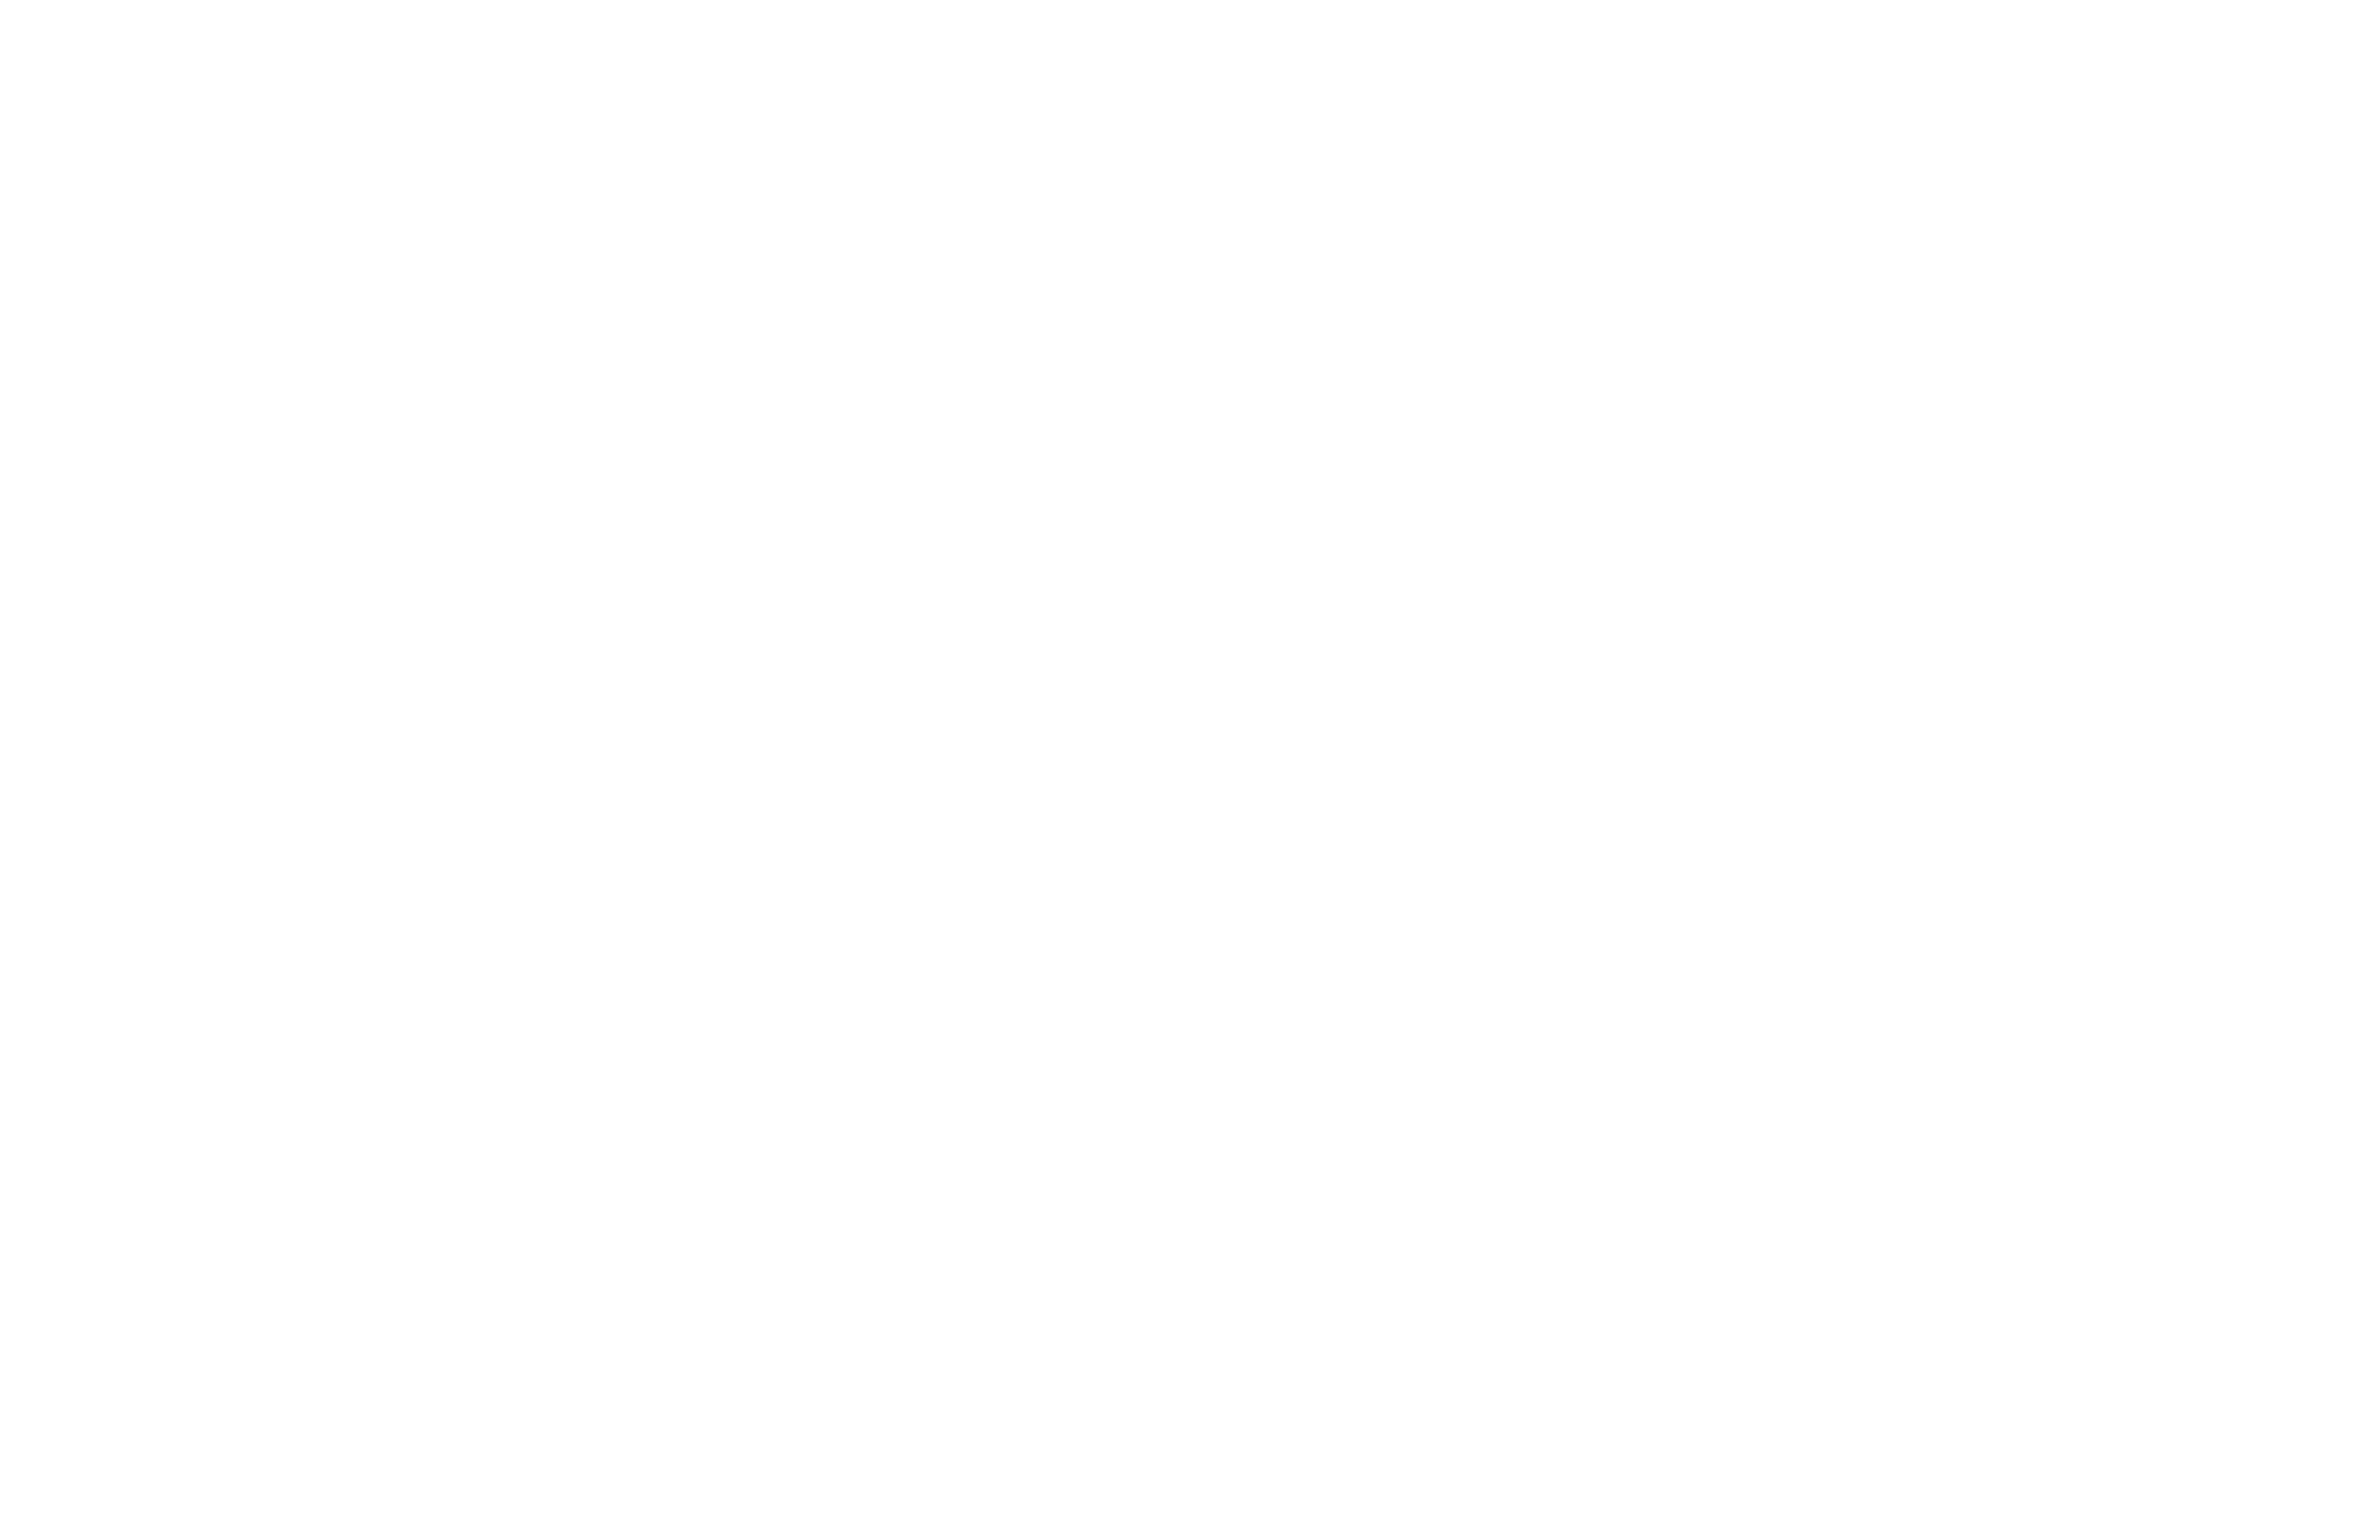 The Village Acupuncturist